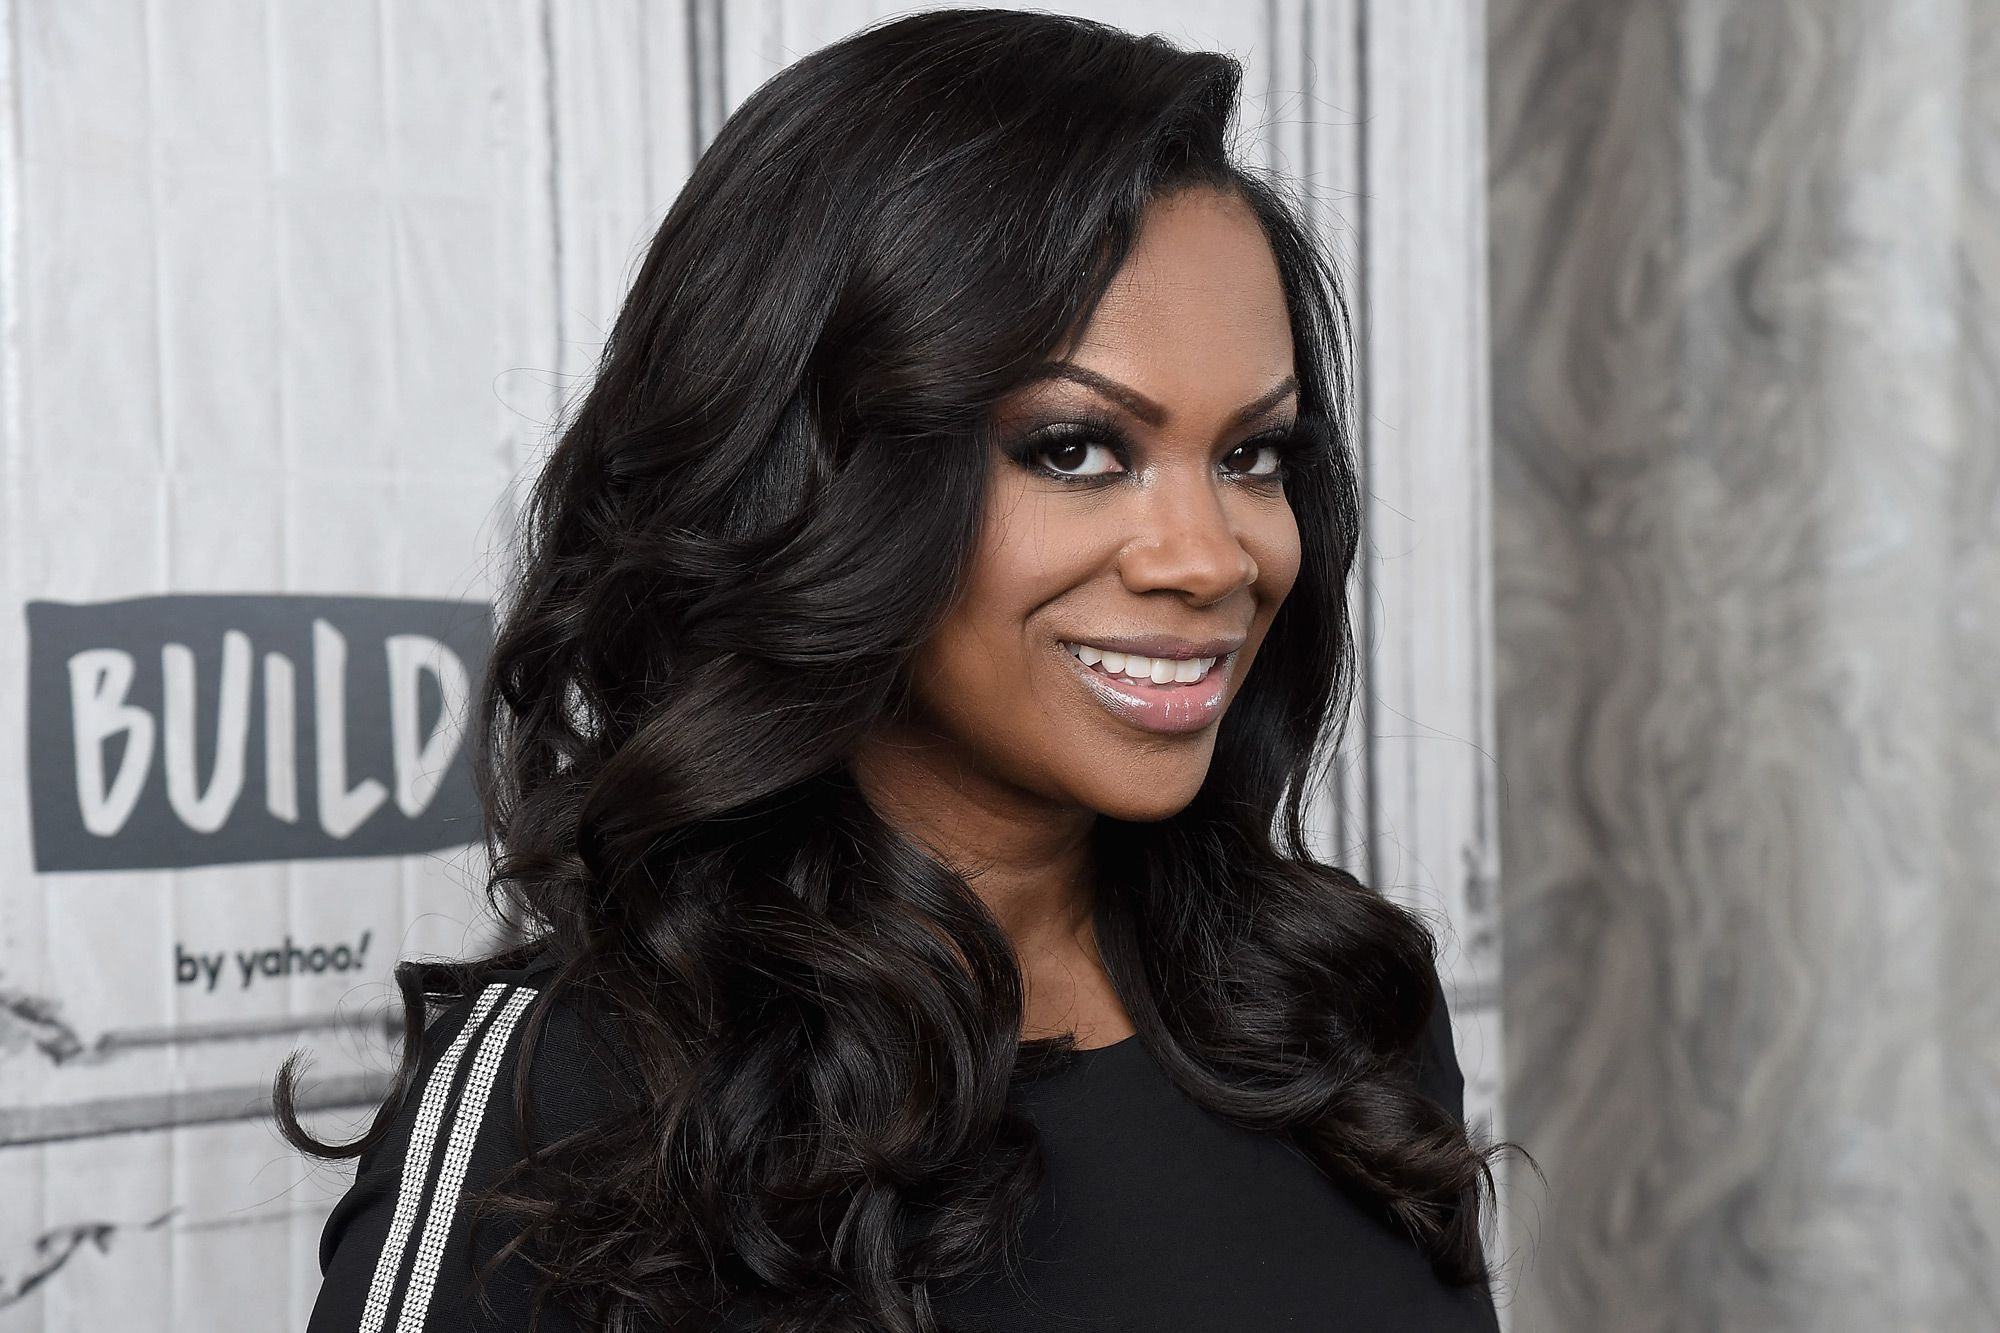 kandi-burruss-shows-off-a-jaw-dropping-look-posing-like-this-see-her-photos-here